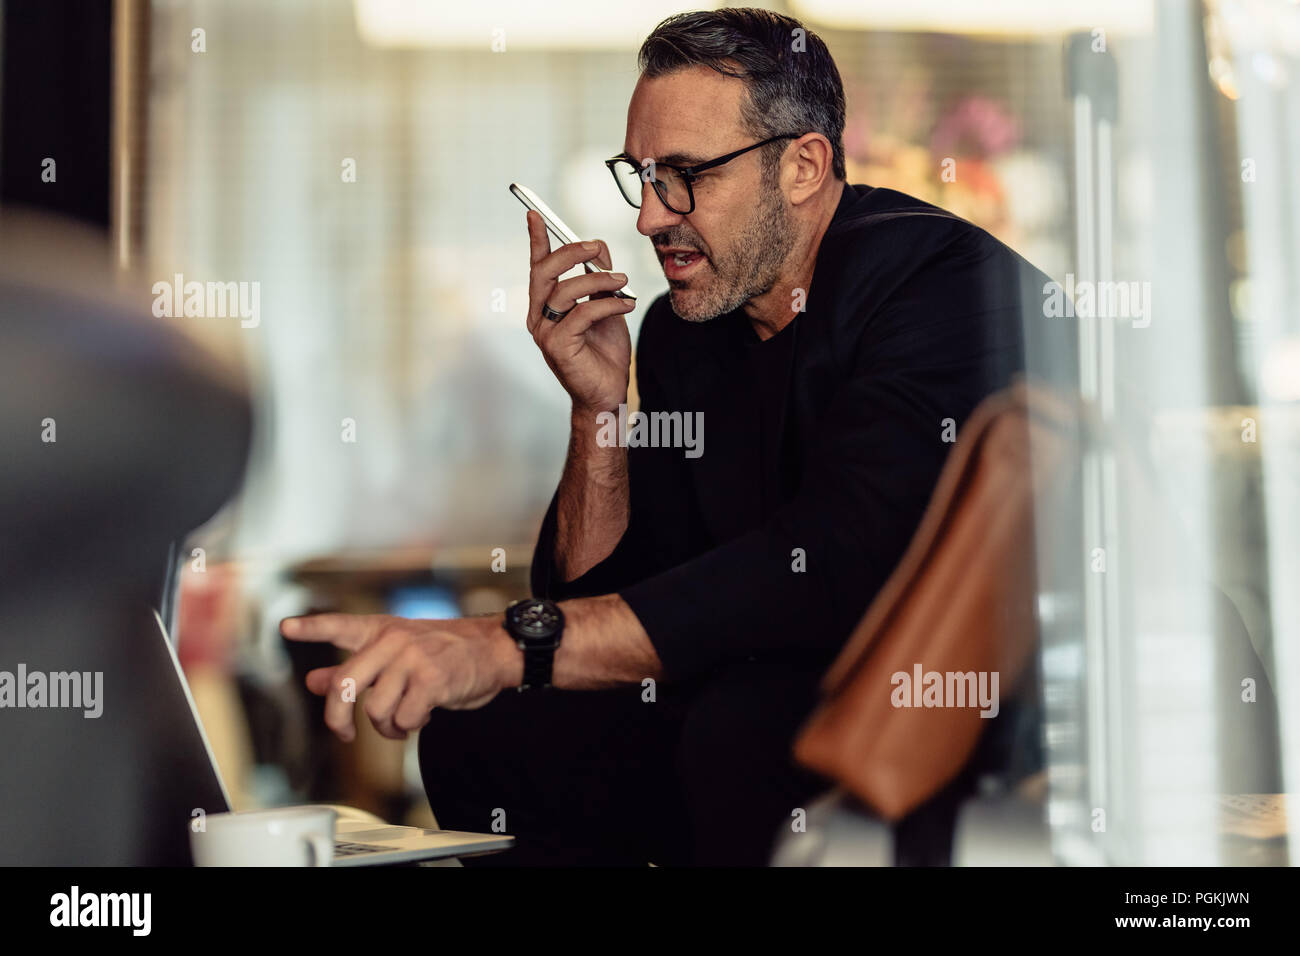 Mature businessman talking on phone while looking at laptop. CEO working while sitting in hotel foyer. - Stock Image